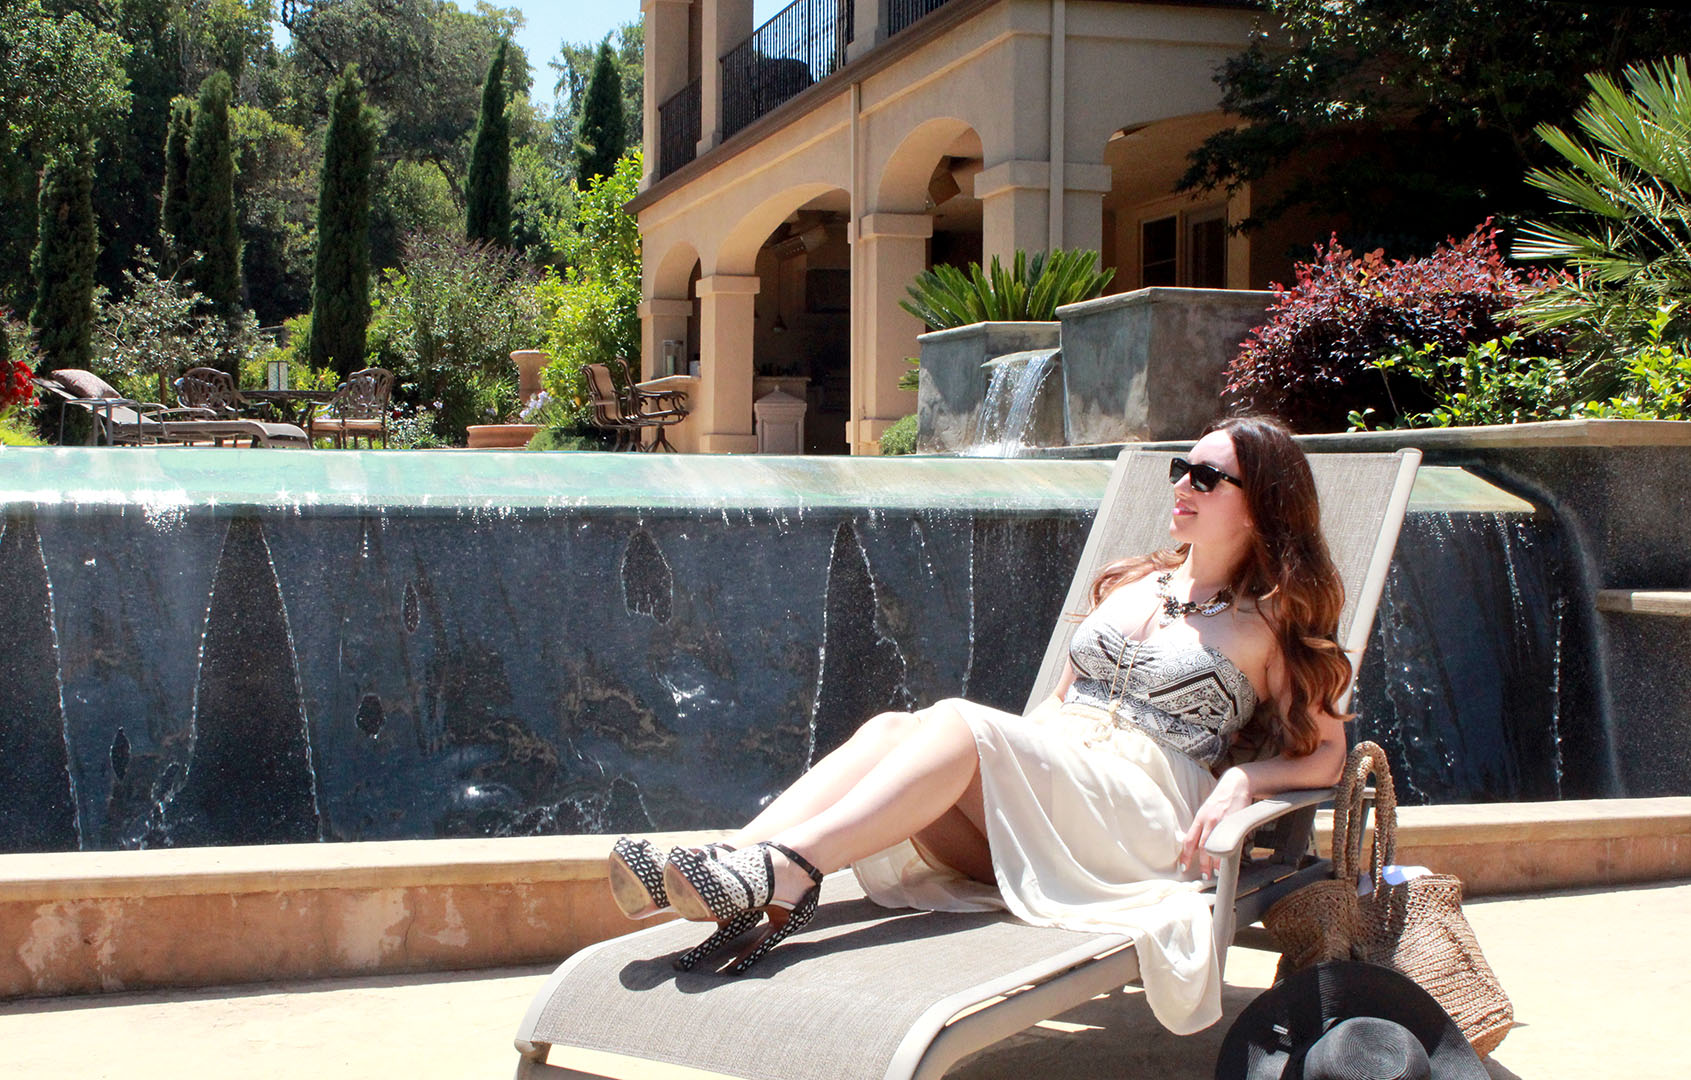 Alaia pool party heels featured by top San Francisco fashion blogger, Just Add Glam